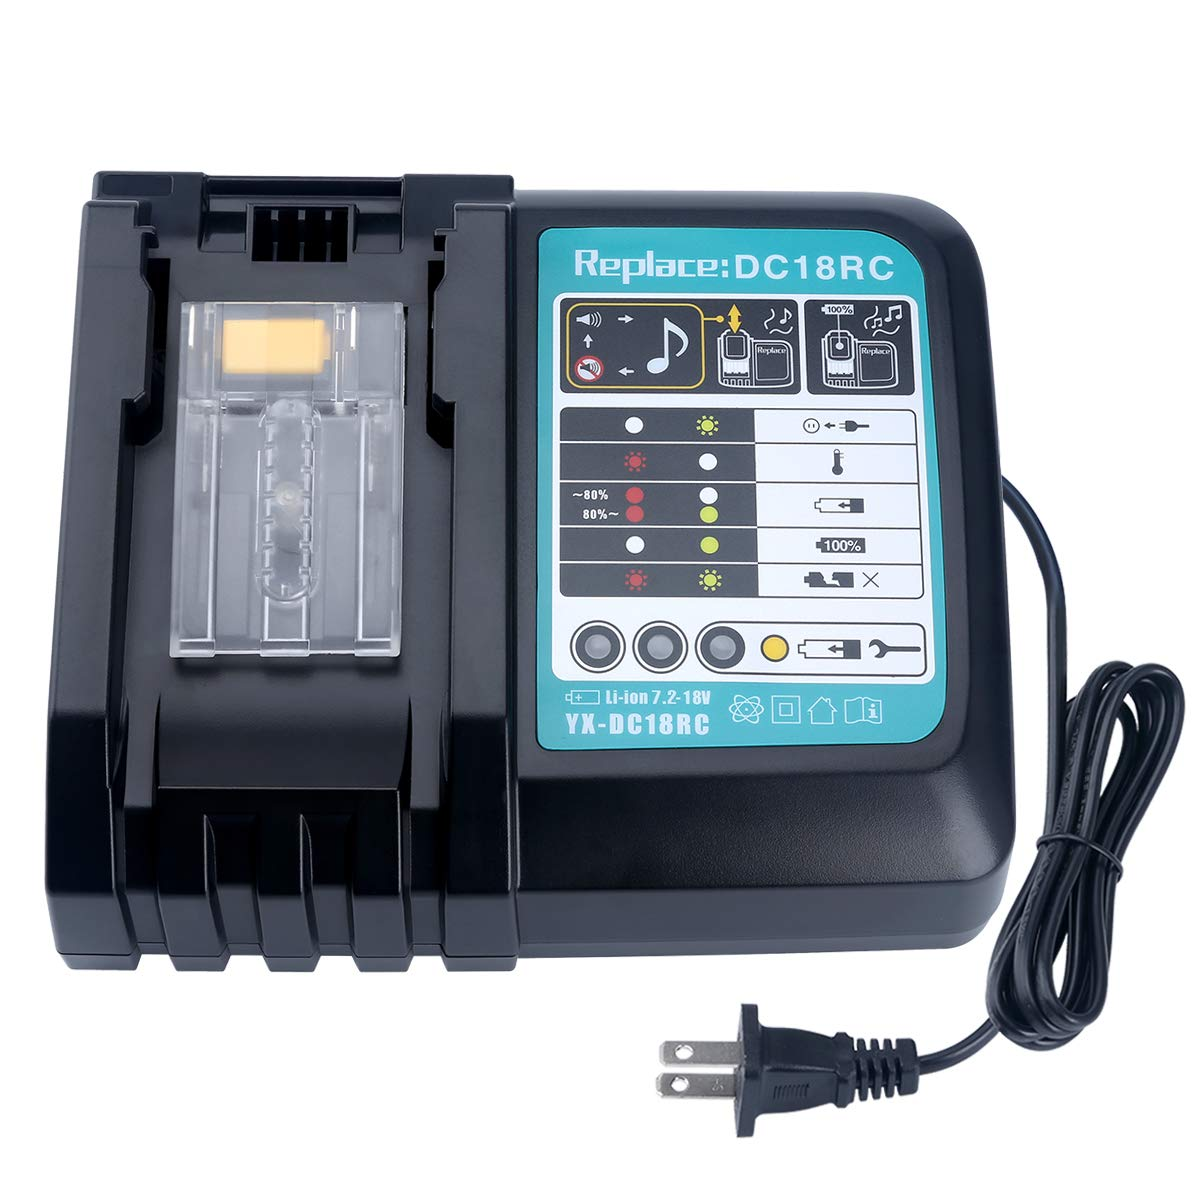 Biswaye 18V Lithium Battery Charger DC18RC DC18RA for Makita 14.4V-18V LXT Lithium-ion Battery BL1815 BL1830 BL1840 BL1850 BL1430 BL1415, 150W High-Power Cooling Fin Inside